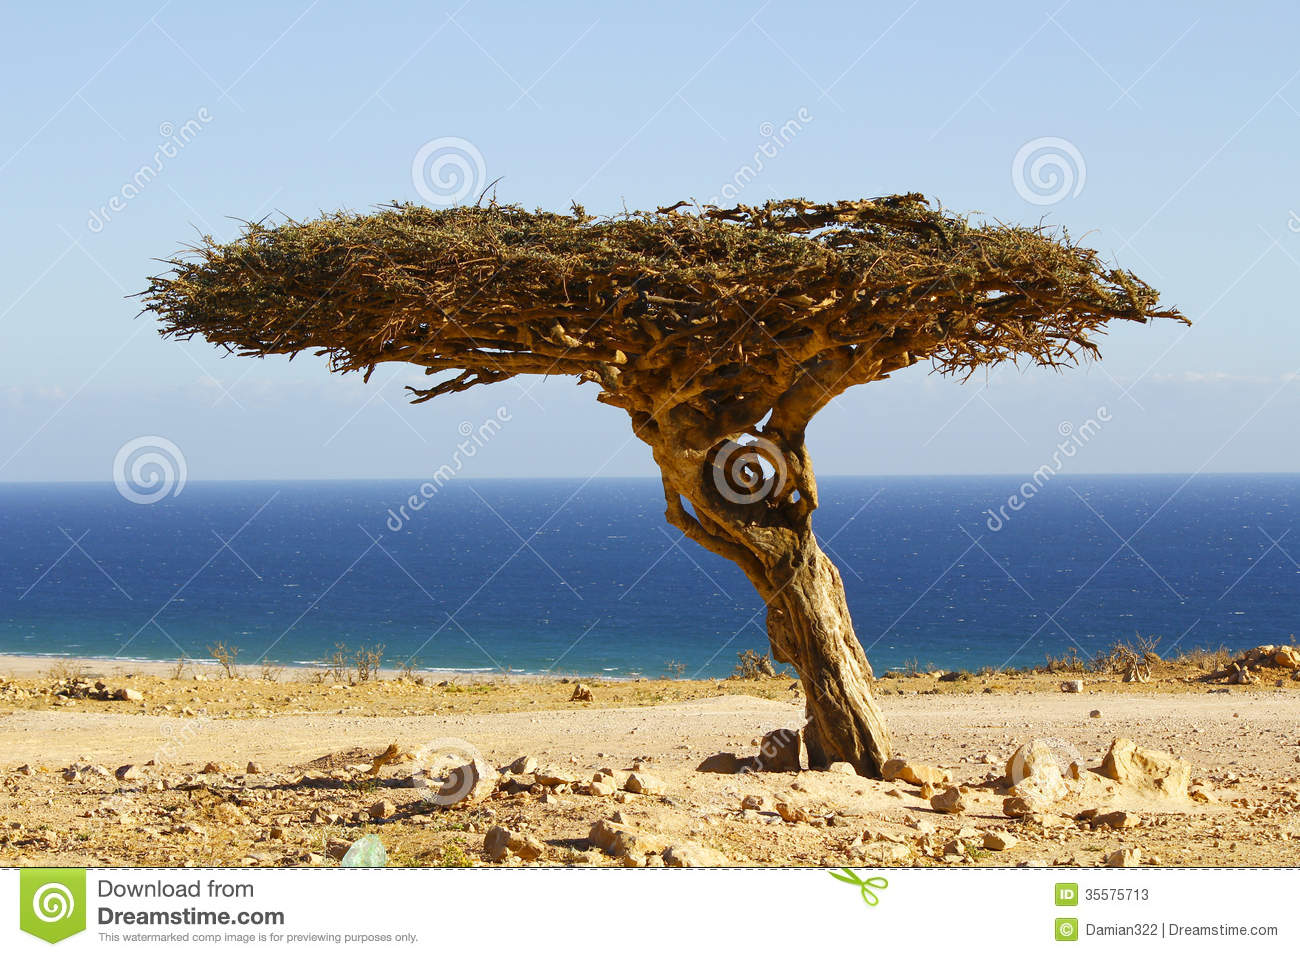 Lonely Tree In The Oman Desert Stock Photos - Image: 35575713